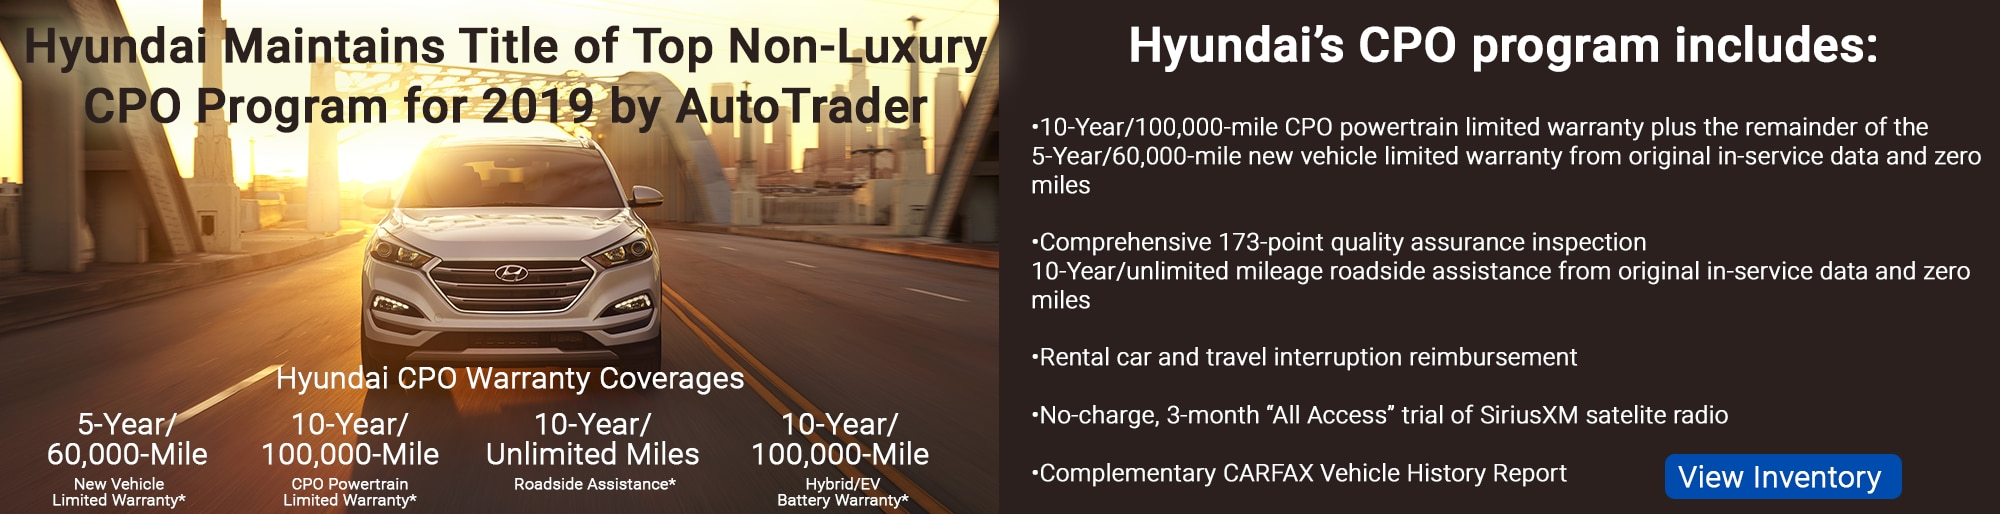 Duluth Car Dealerships >> Jim Ellis Hyundai Atlanta: New, Used, & Certified Pre-Owned Hyundai Dealer | Marietta, Roswell ...